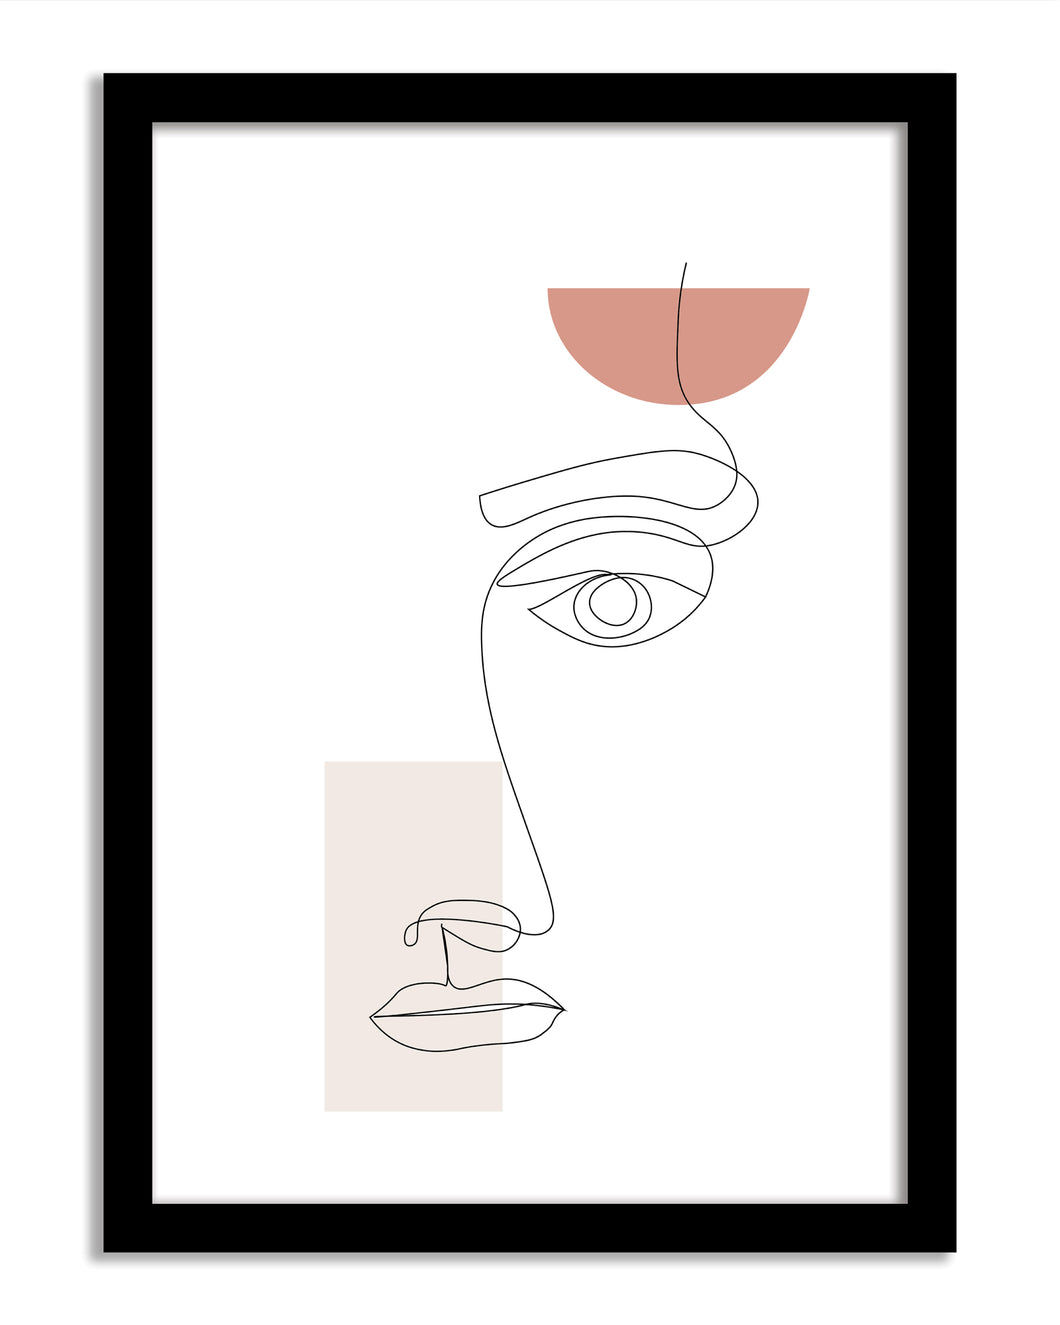 Line Art Framed Print - Samantha